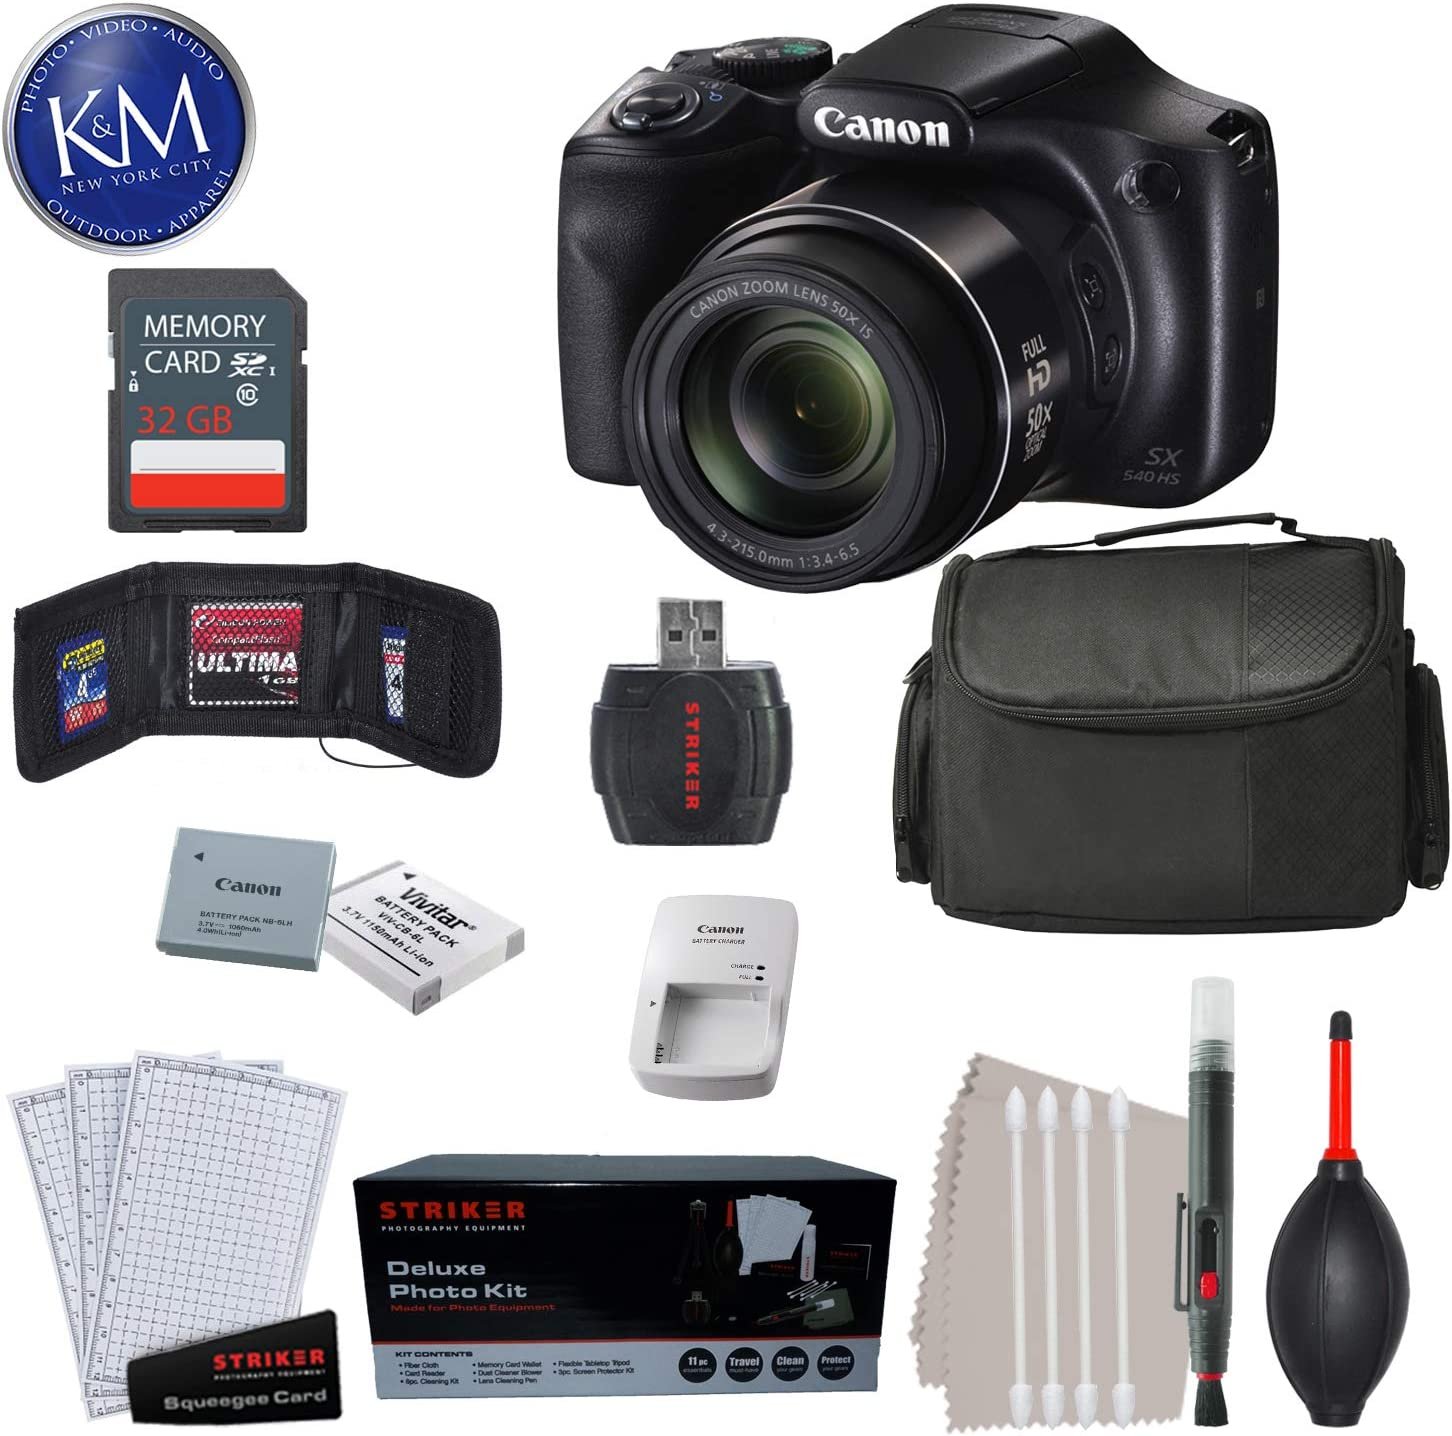 Canon PowerShot SX540 HS Digital Camera + 32GB SD Card & K&M Premium Bundle